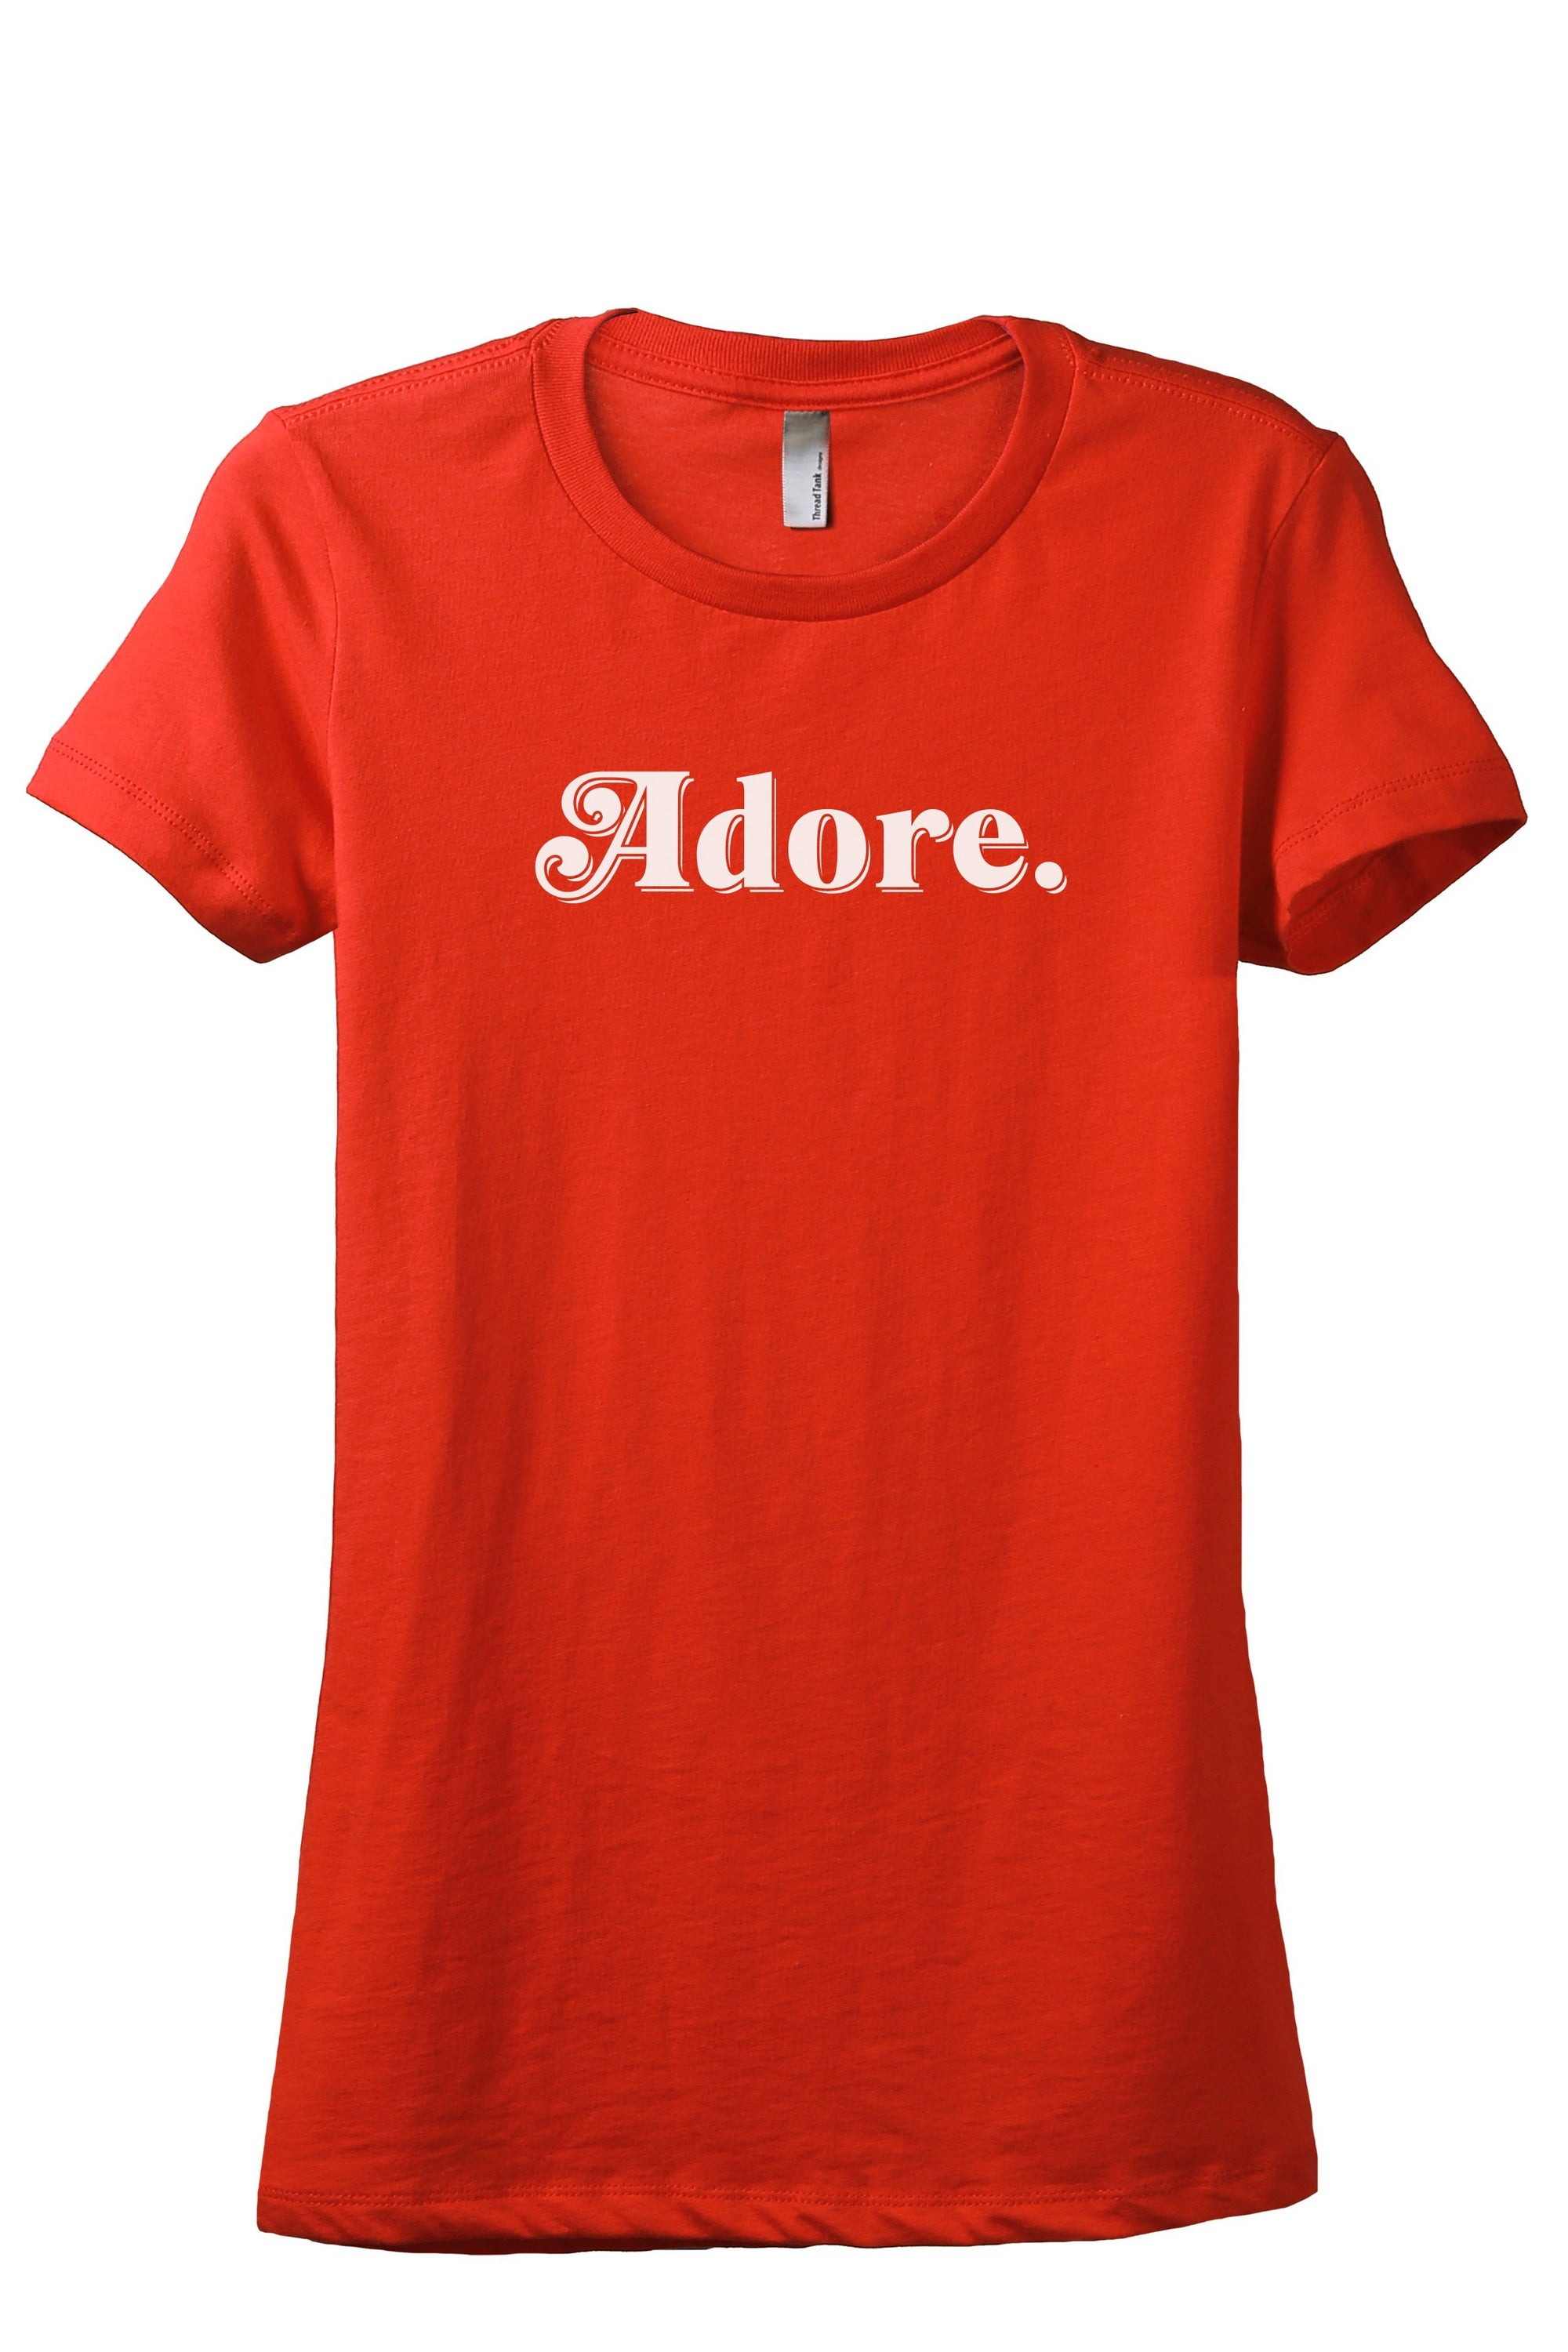 Adore Women's Relaxed Crewneck T-Shirt Top Tee Poppy